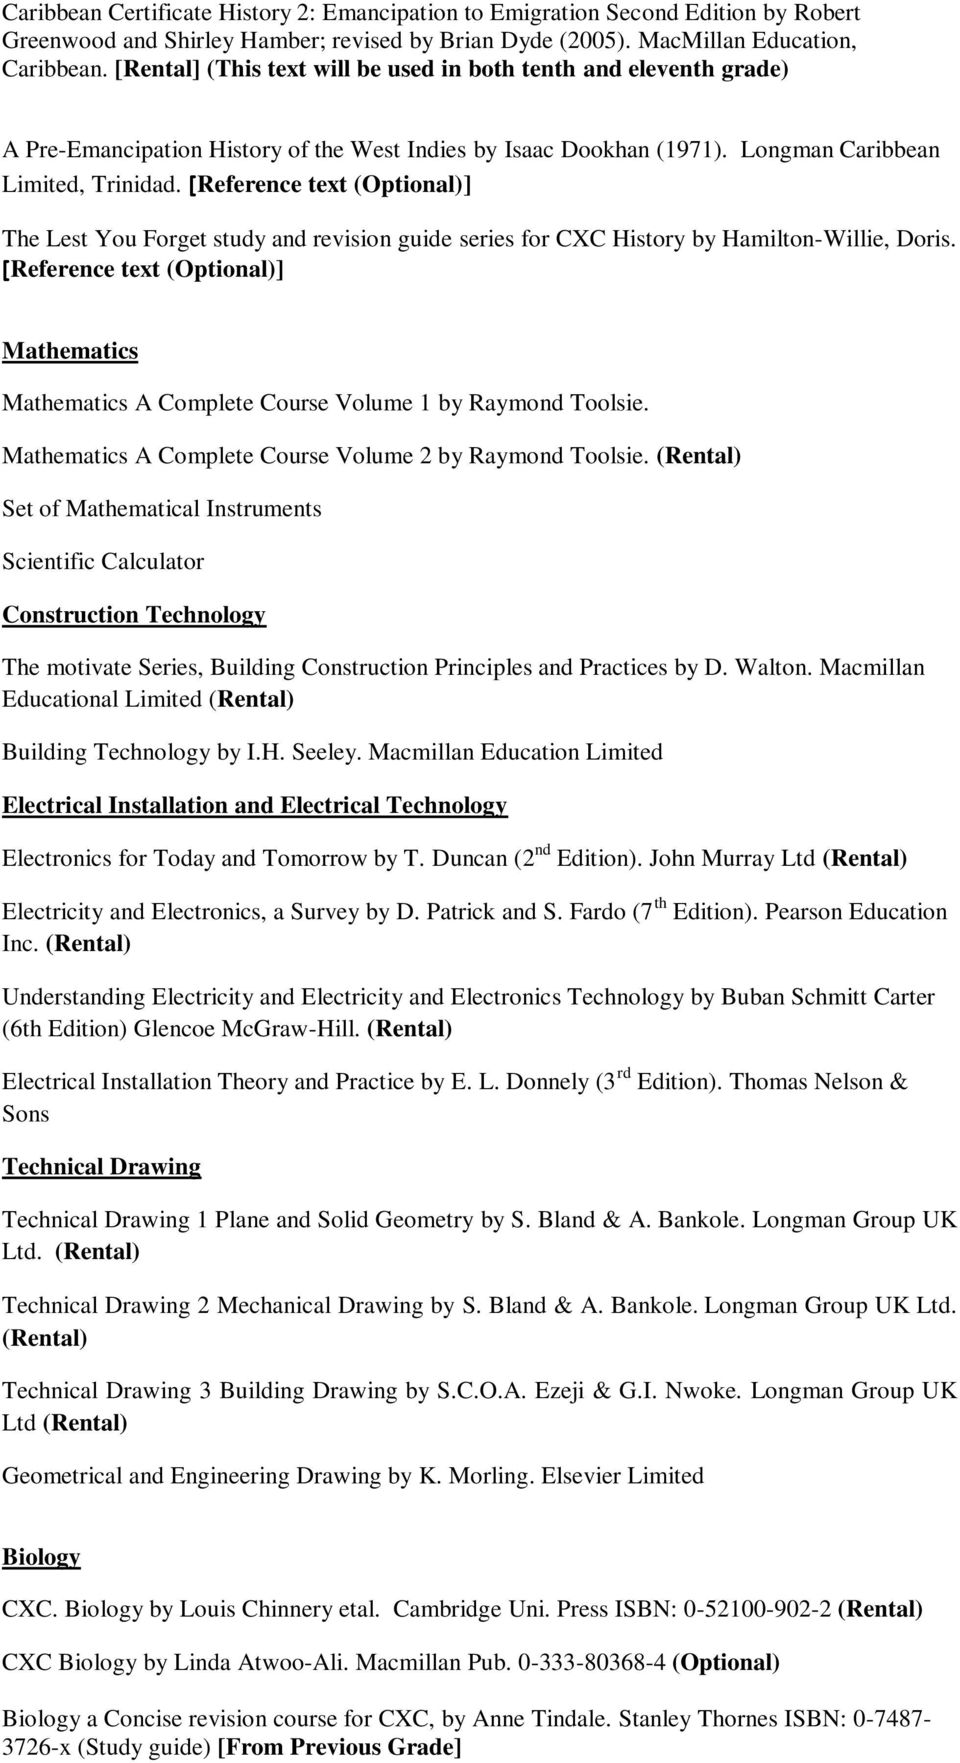 Ardenne high school grade 10 booklist pdf reference text optional the lest you forget study and revision guide series fandeluxe Choice Image